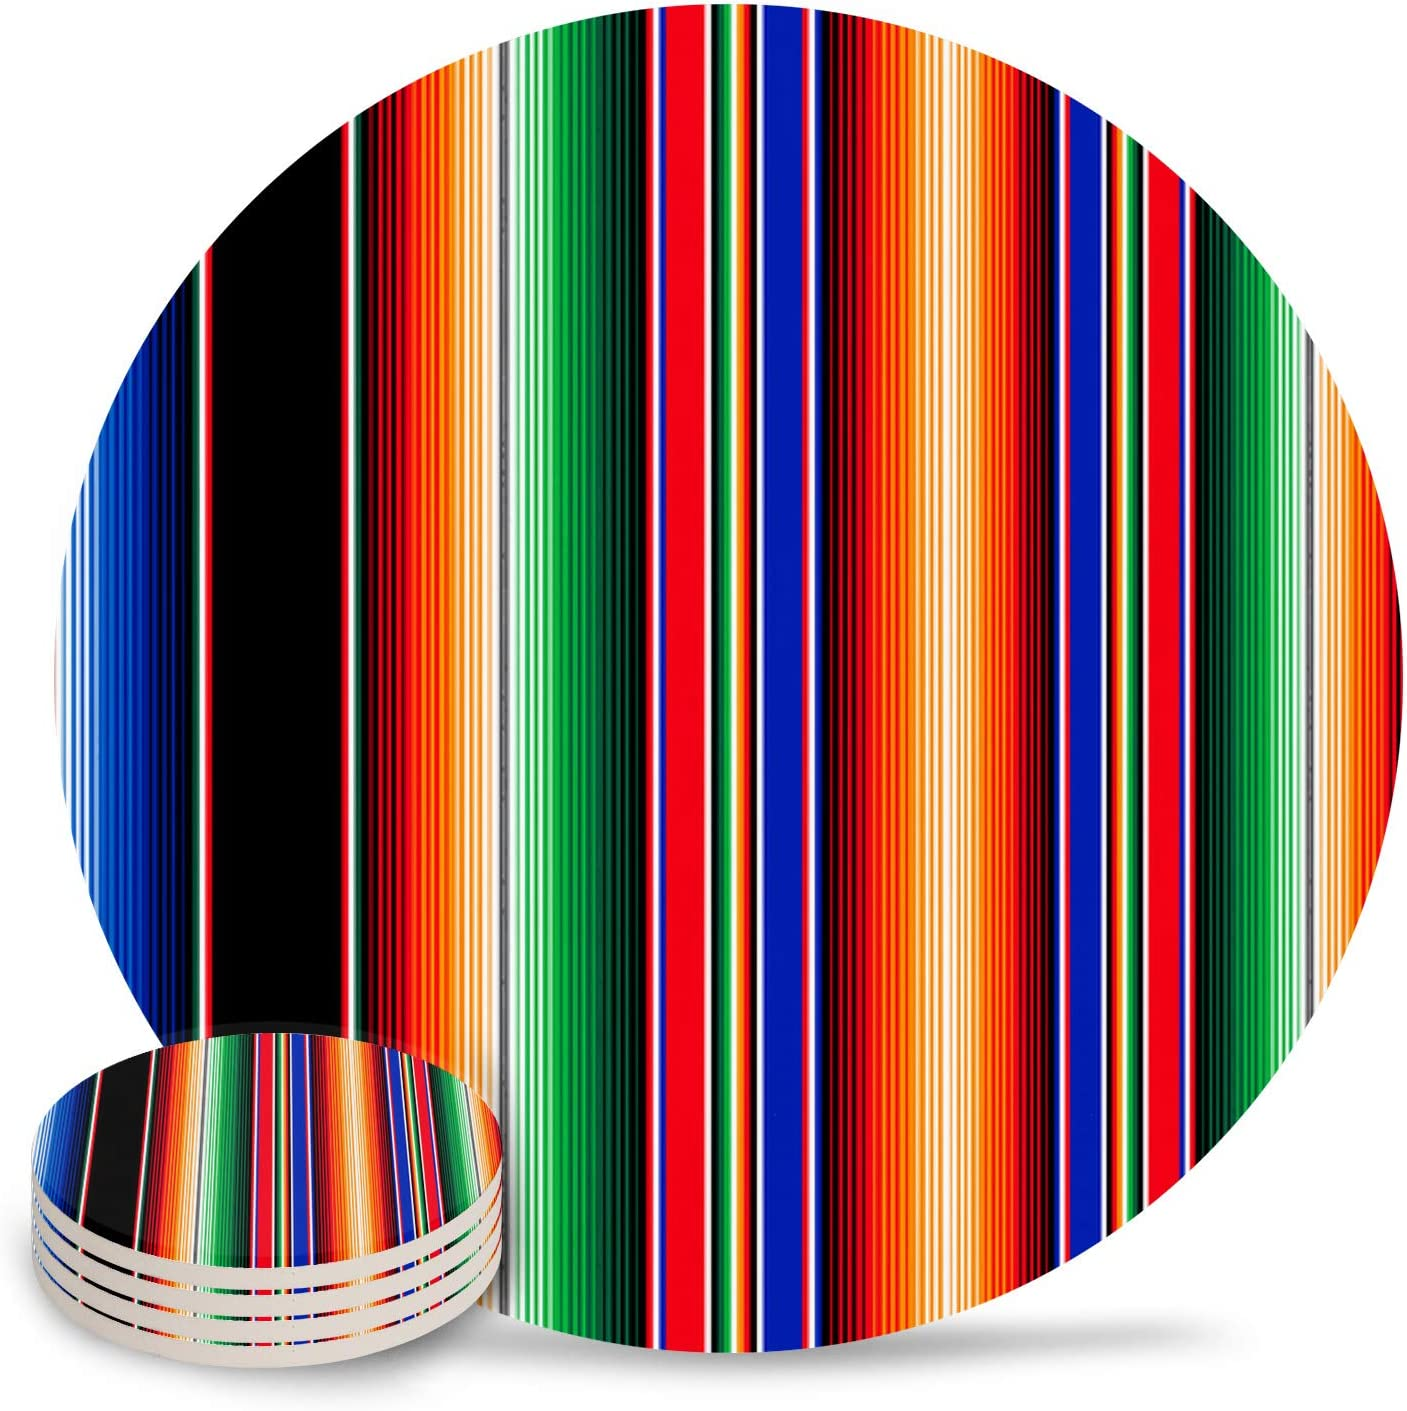 Cinco de Mayo Coasters For Drinks Set of 4, Absorbent Ceramic Coaster with Cork Back, Use as House, Living Room or Coffee Bar Decor, Mexican Serape Colorful Stripes Vertical Lines Latino